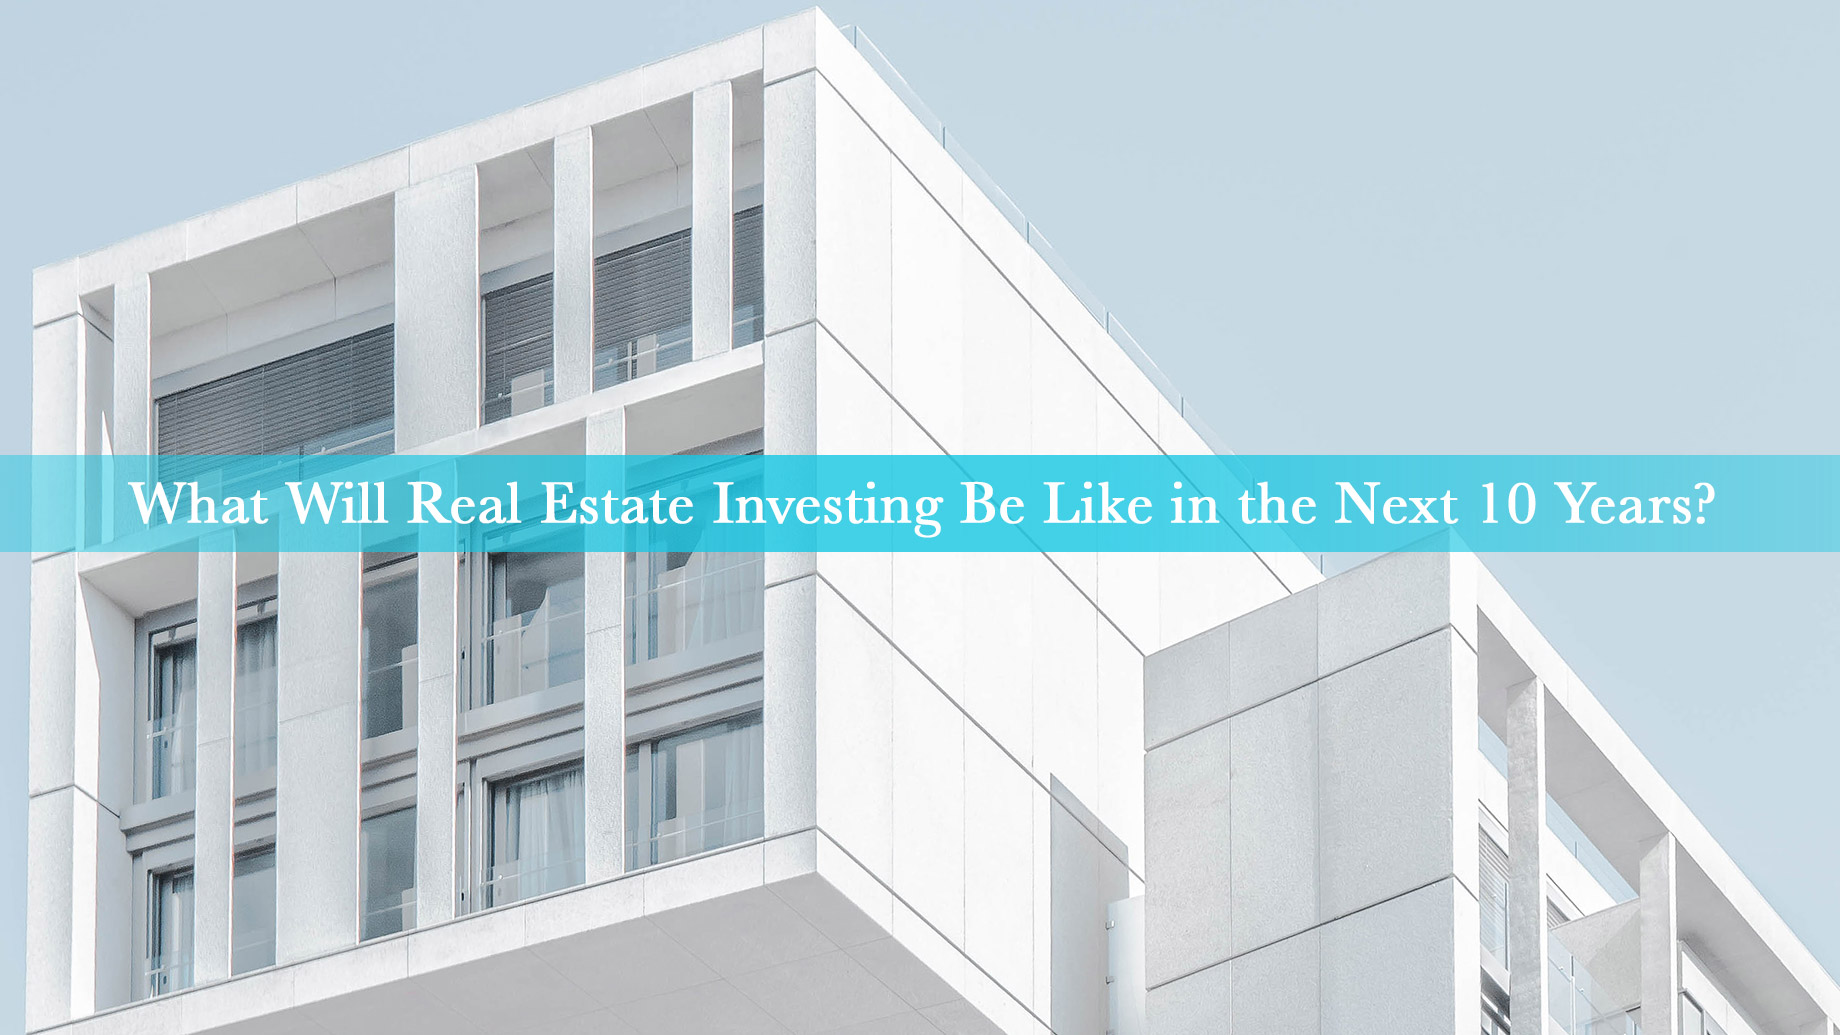 What Will Real Estate Investing Be Like in the Next 10 Years?